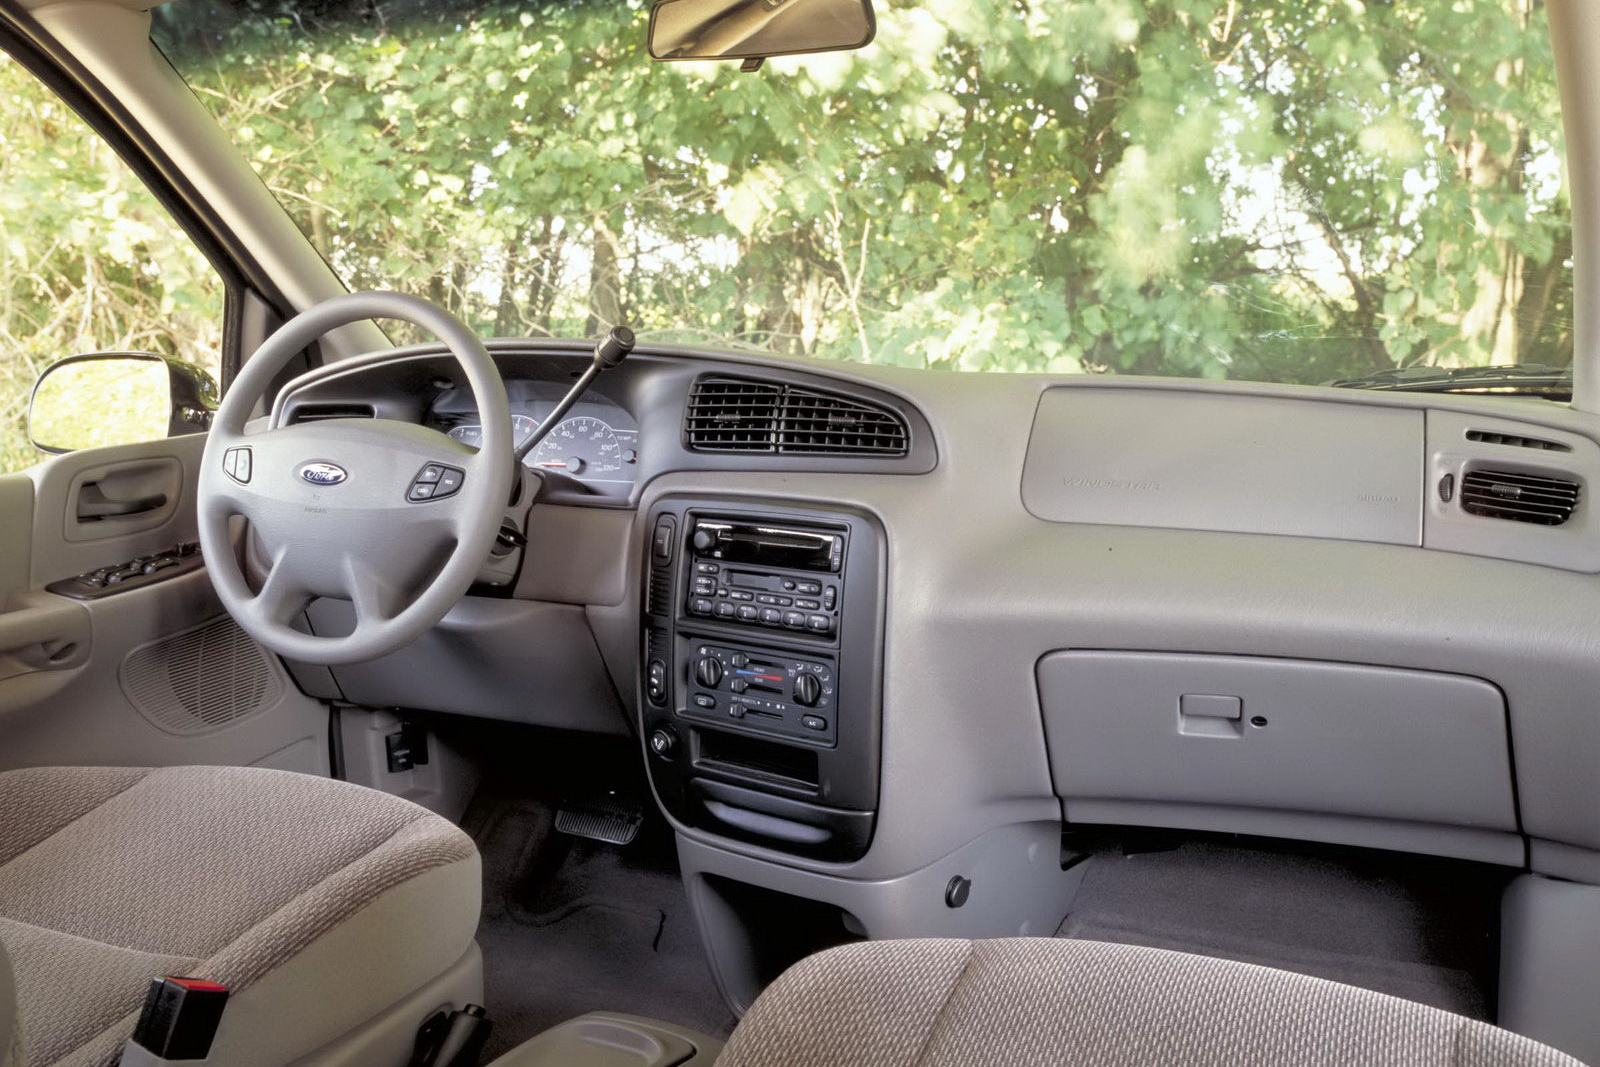 Ford Windstar interior #1